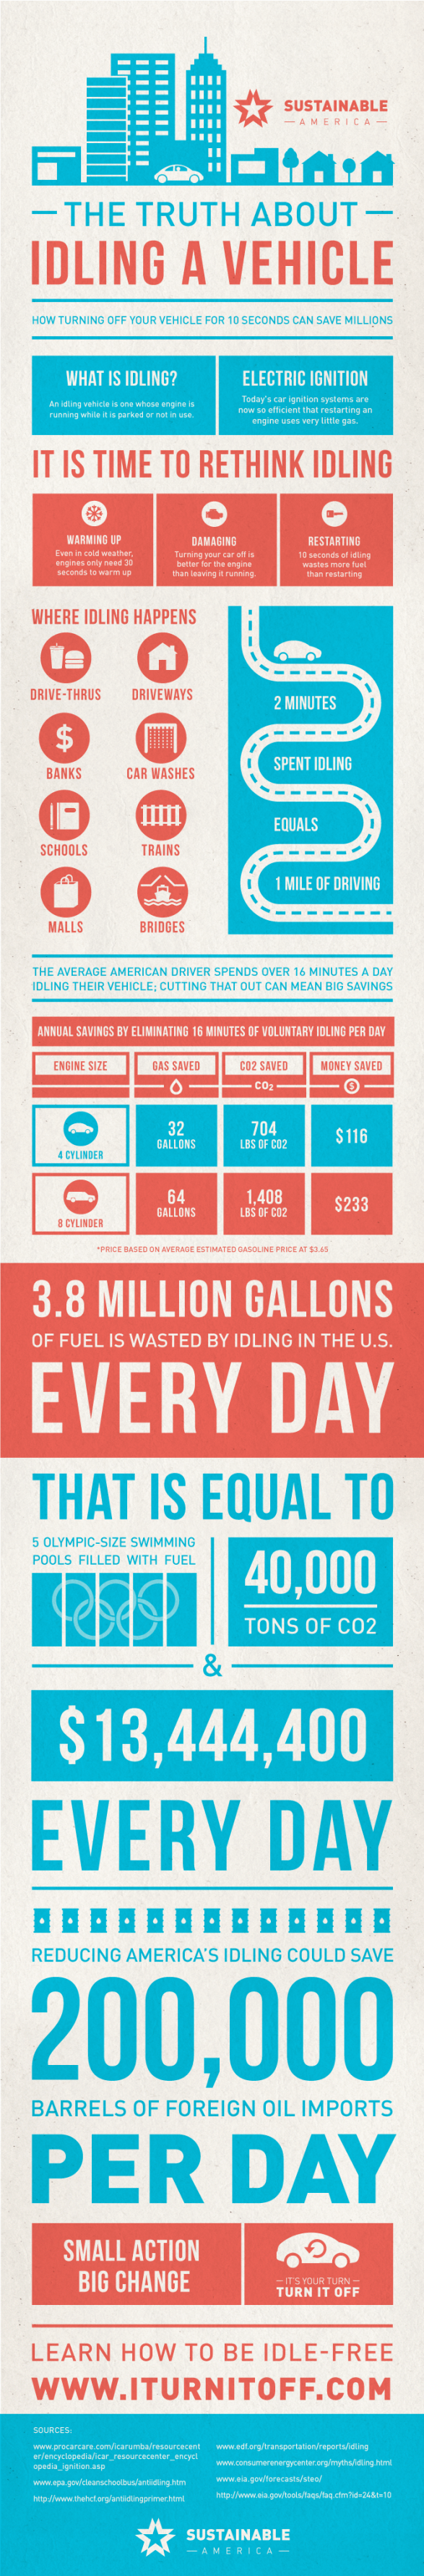 The Truth About Idling